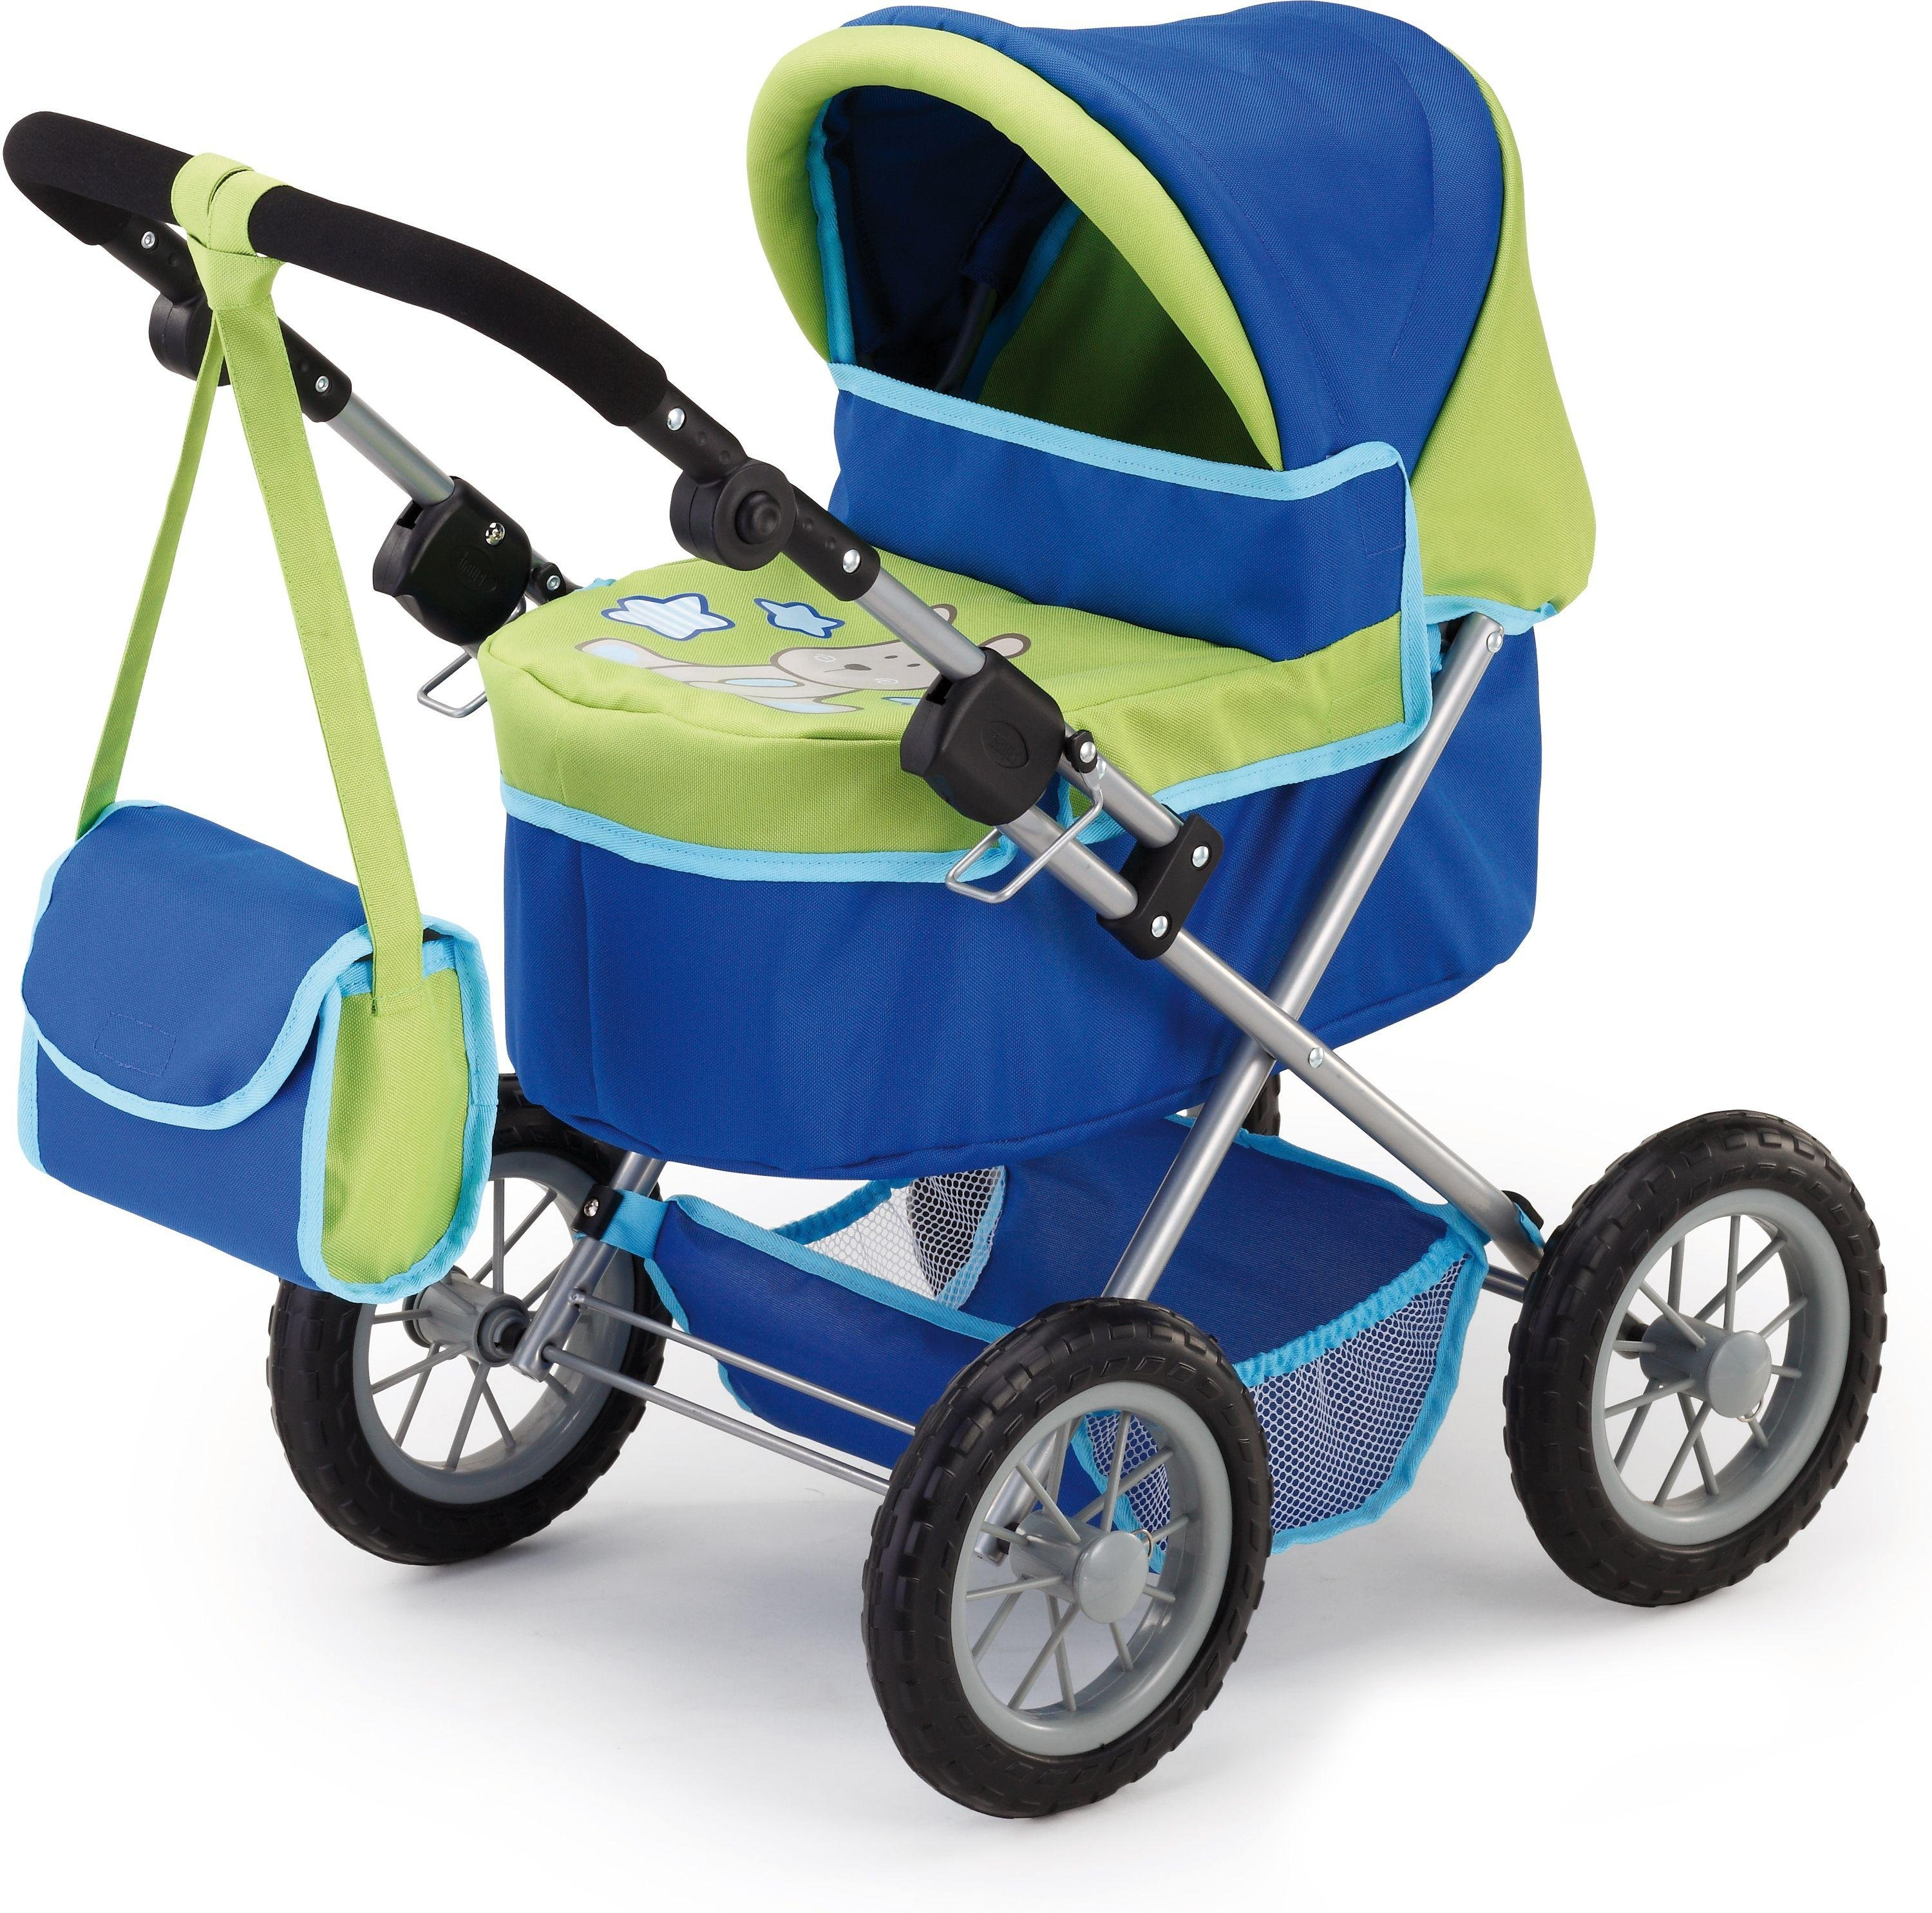 Image of Bayer - Design Trendy Doll Pram - Blue & Green